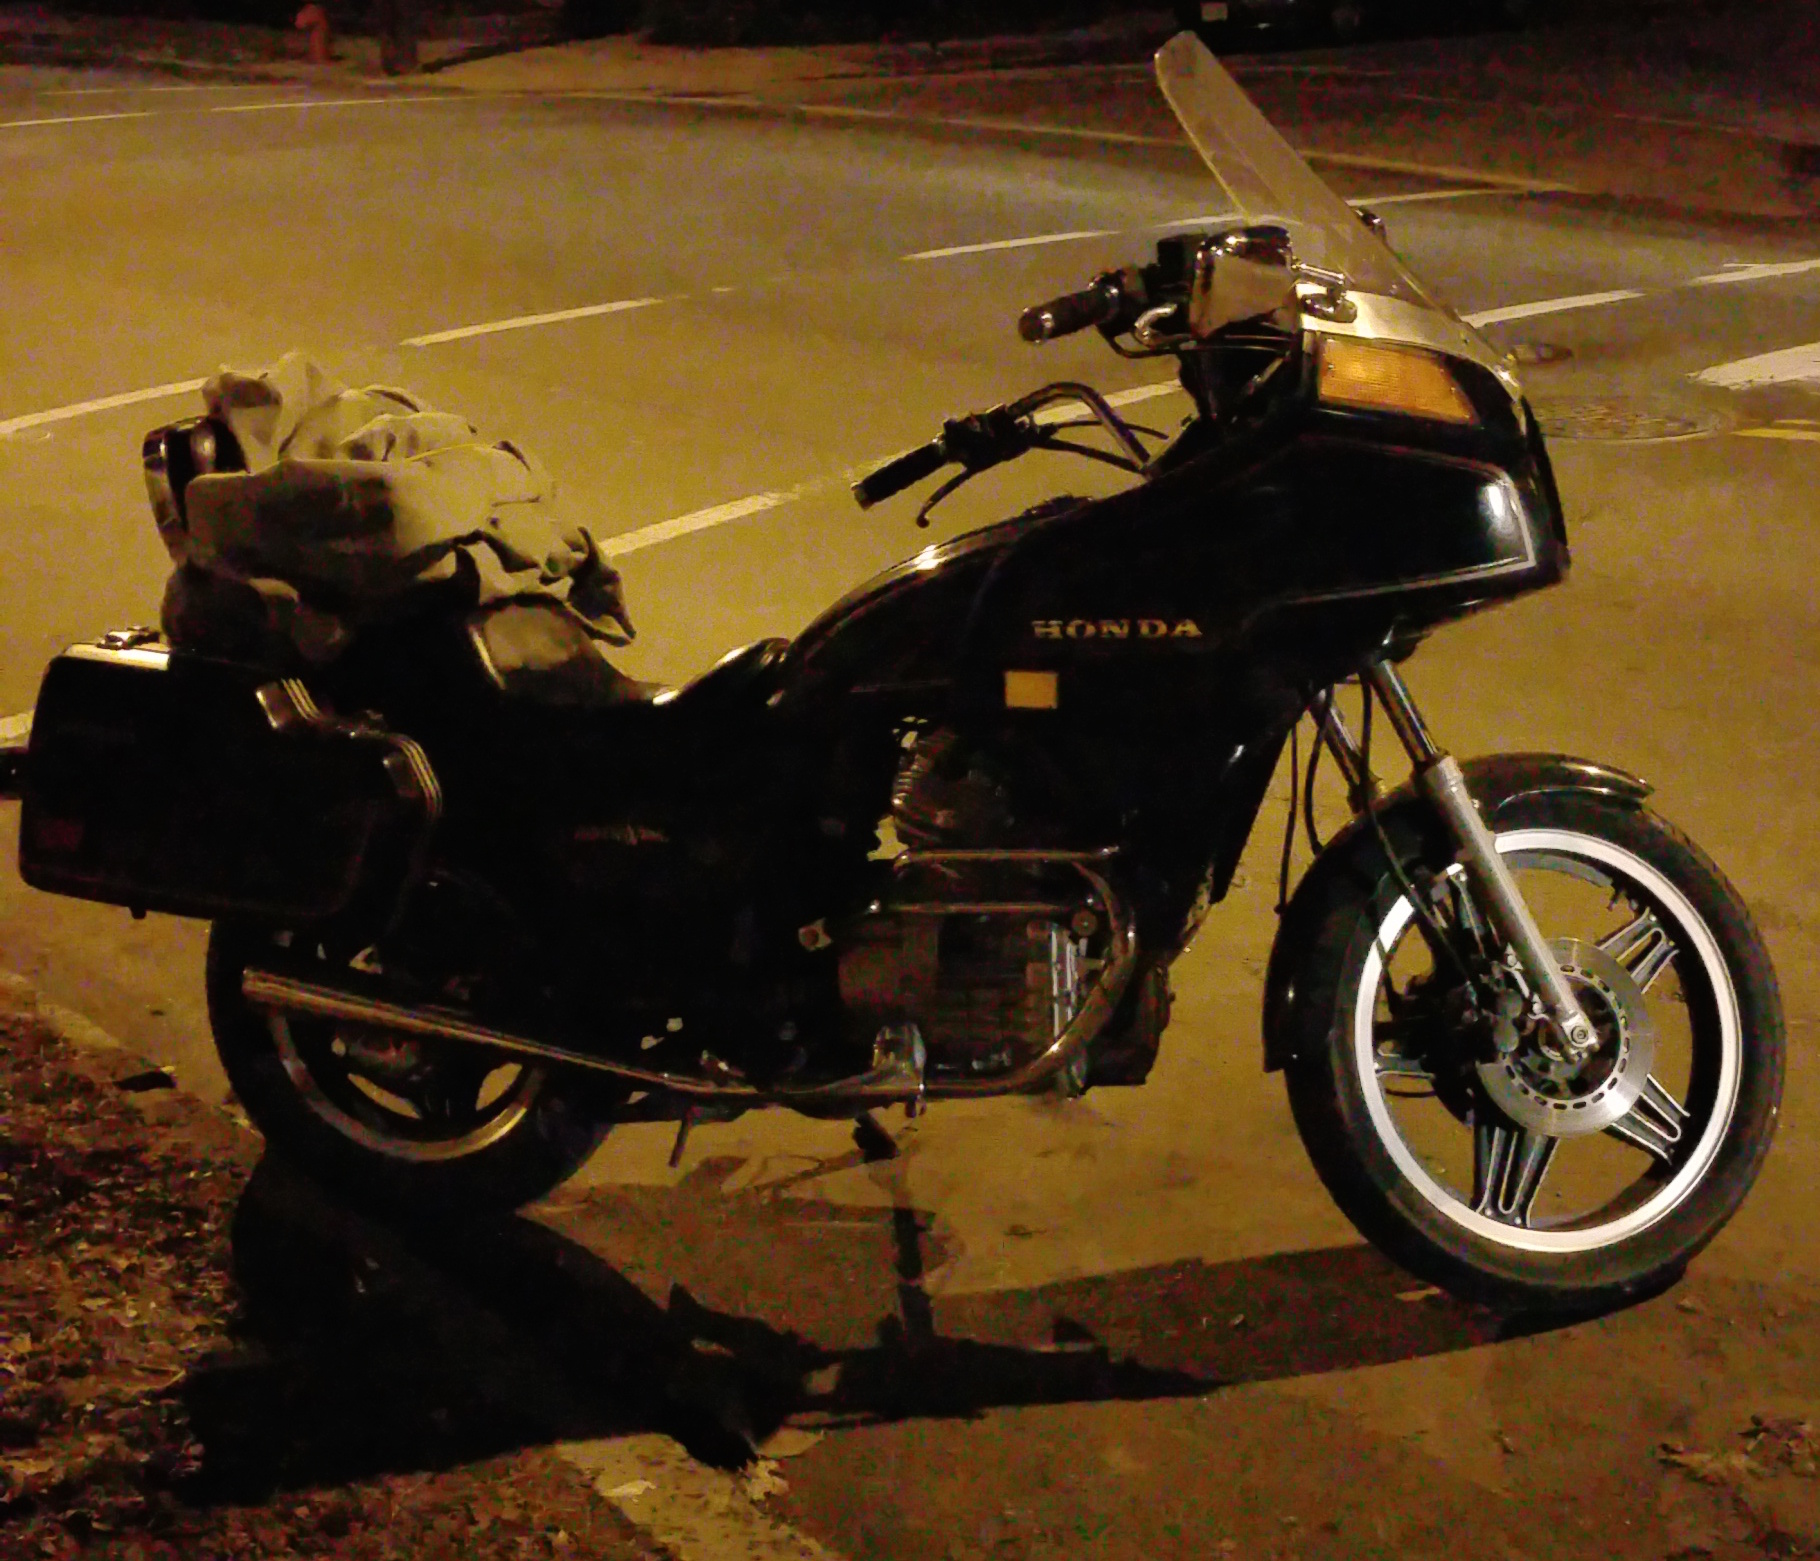 New Member With A 1981 Honda Silverwing Gl500i Interstate 1970 Silver Wing Motorcycles Name Img 20150318 195342 Views 498 Size 8607 Kb